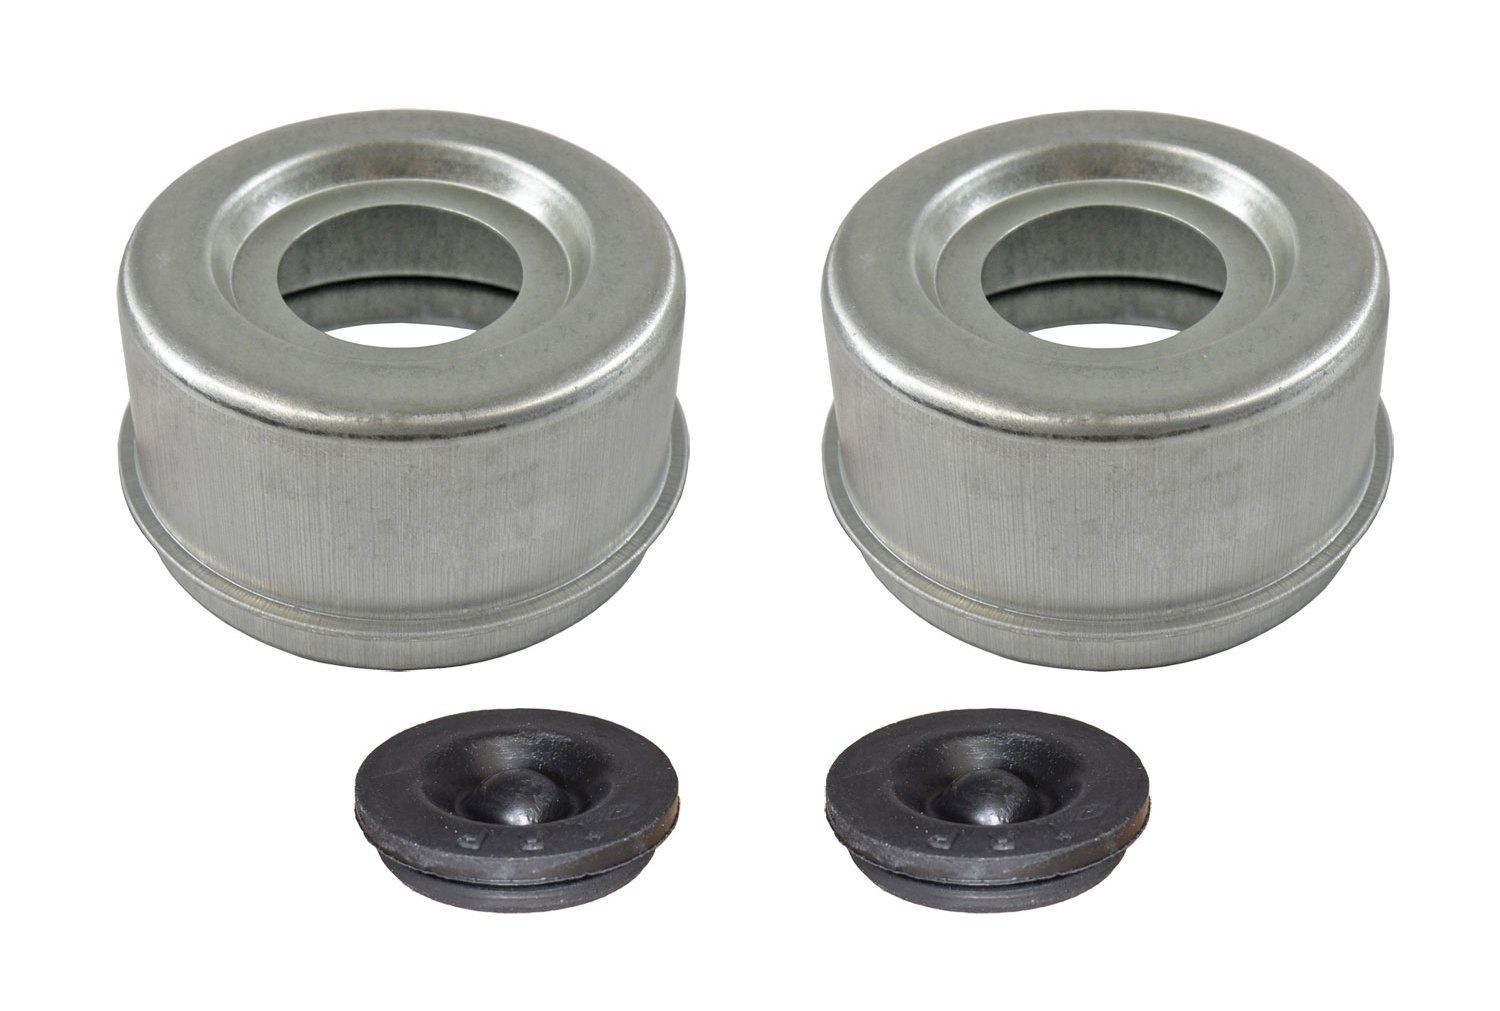 E-Z Lube Grease Caps With Rubber Plugs - Pair (EZ3-PR)